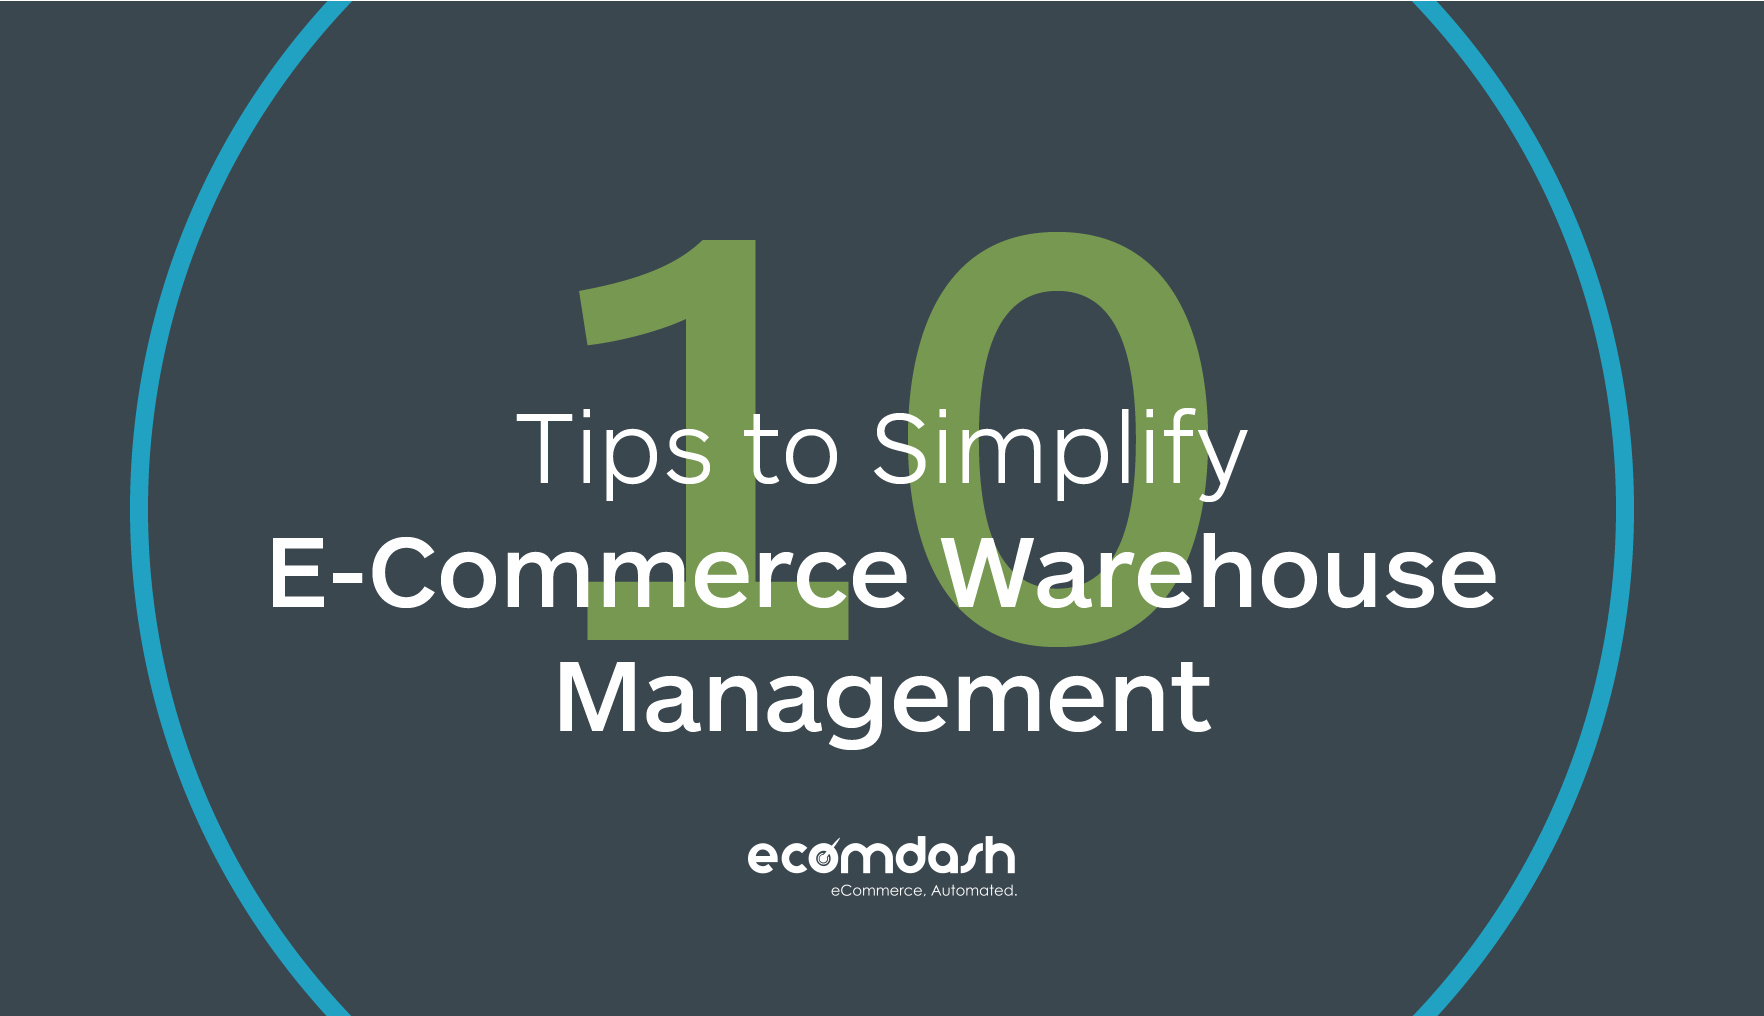 Simplify E-commerce Warehouse Management